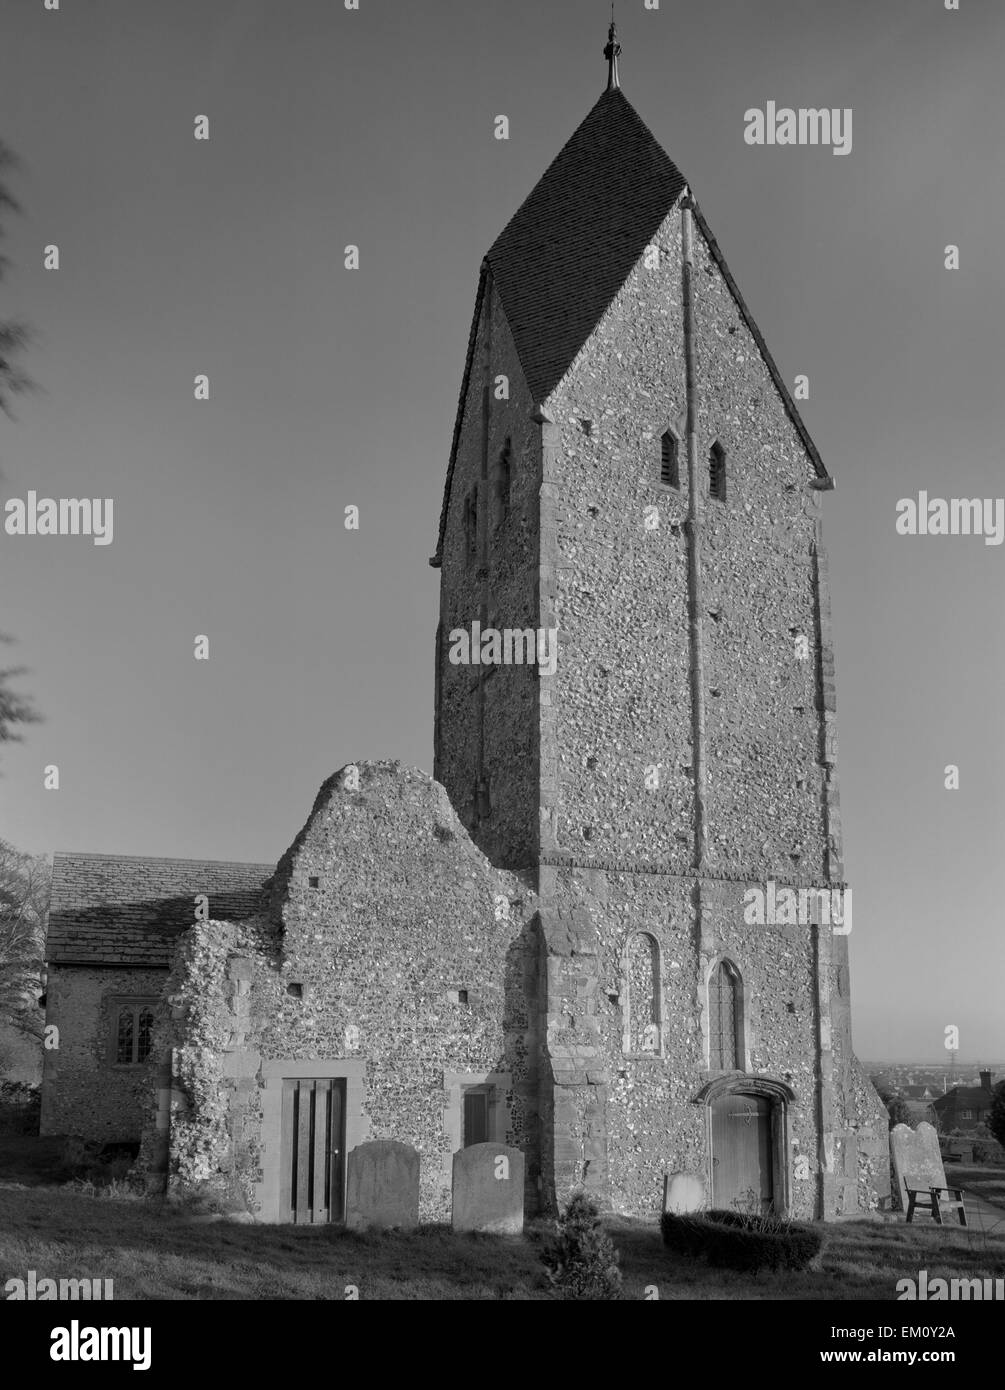 The C11th Saxon tower of St Mary's Church, Sompting, West Sussex: its 'Rhenish Helm' design with four - Stock Image